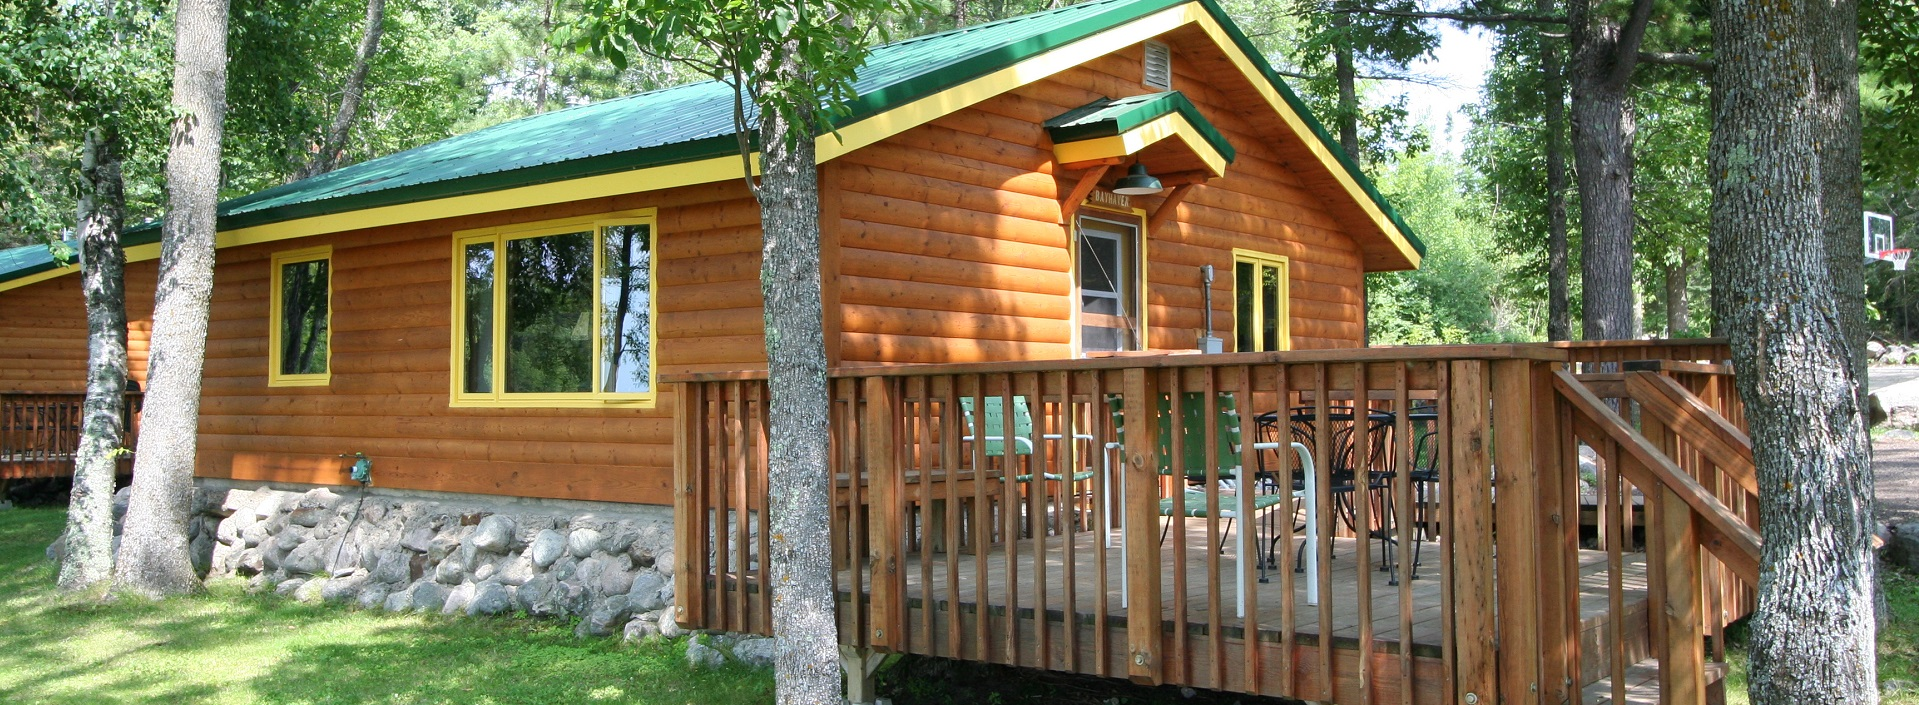 cabin with deck